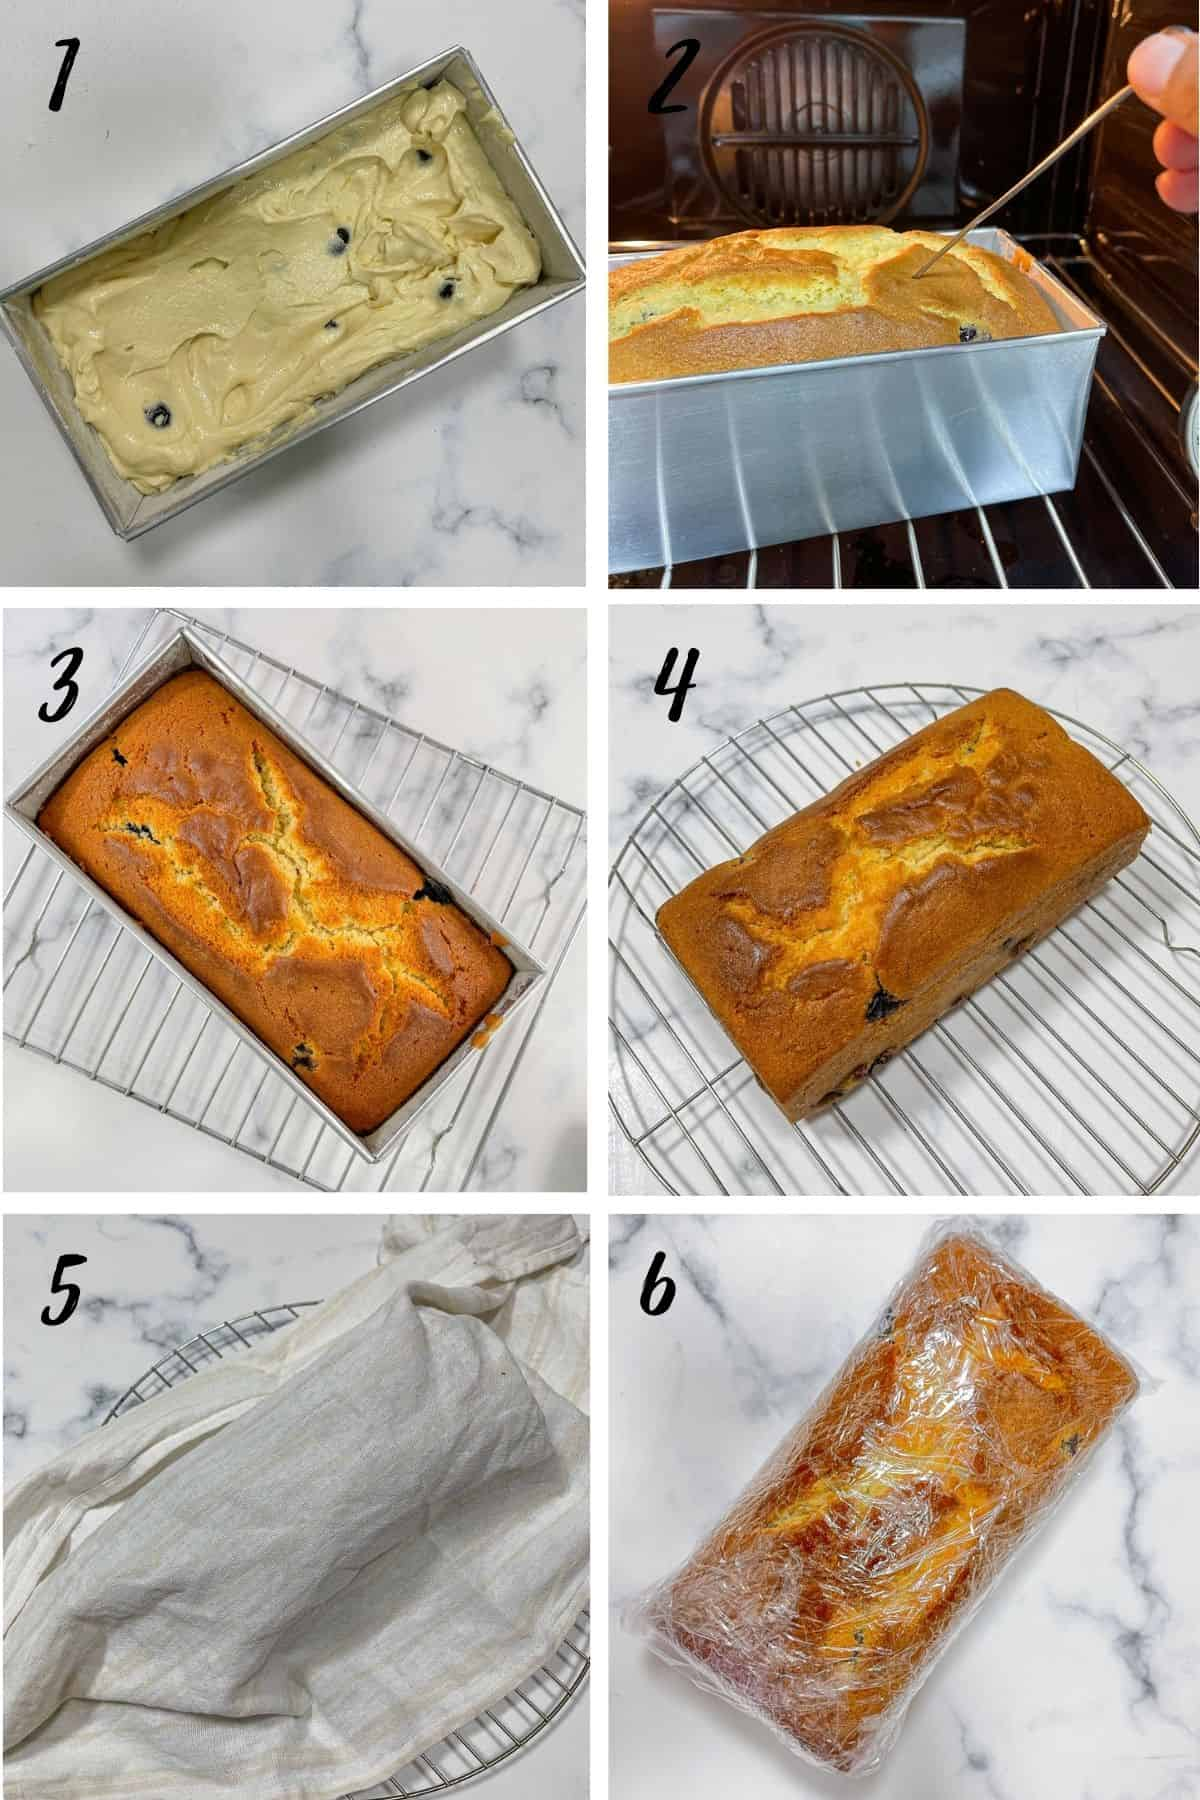 A poster of 6 images showing how to bake a blueberry cake loaf, how to cool it and wrap it in cling wrap